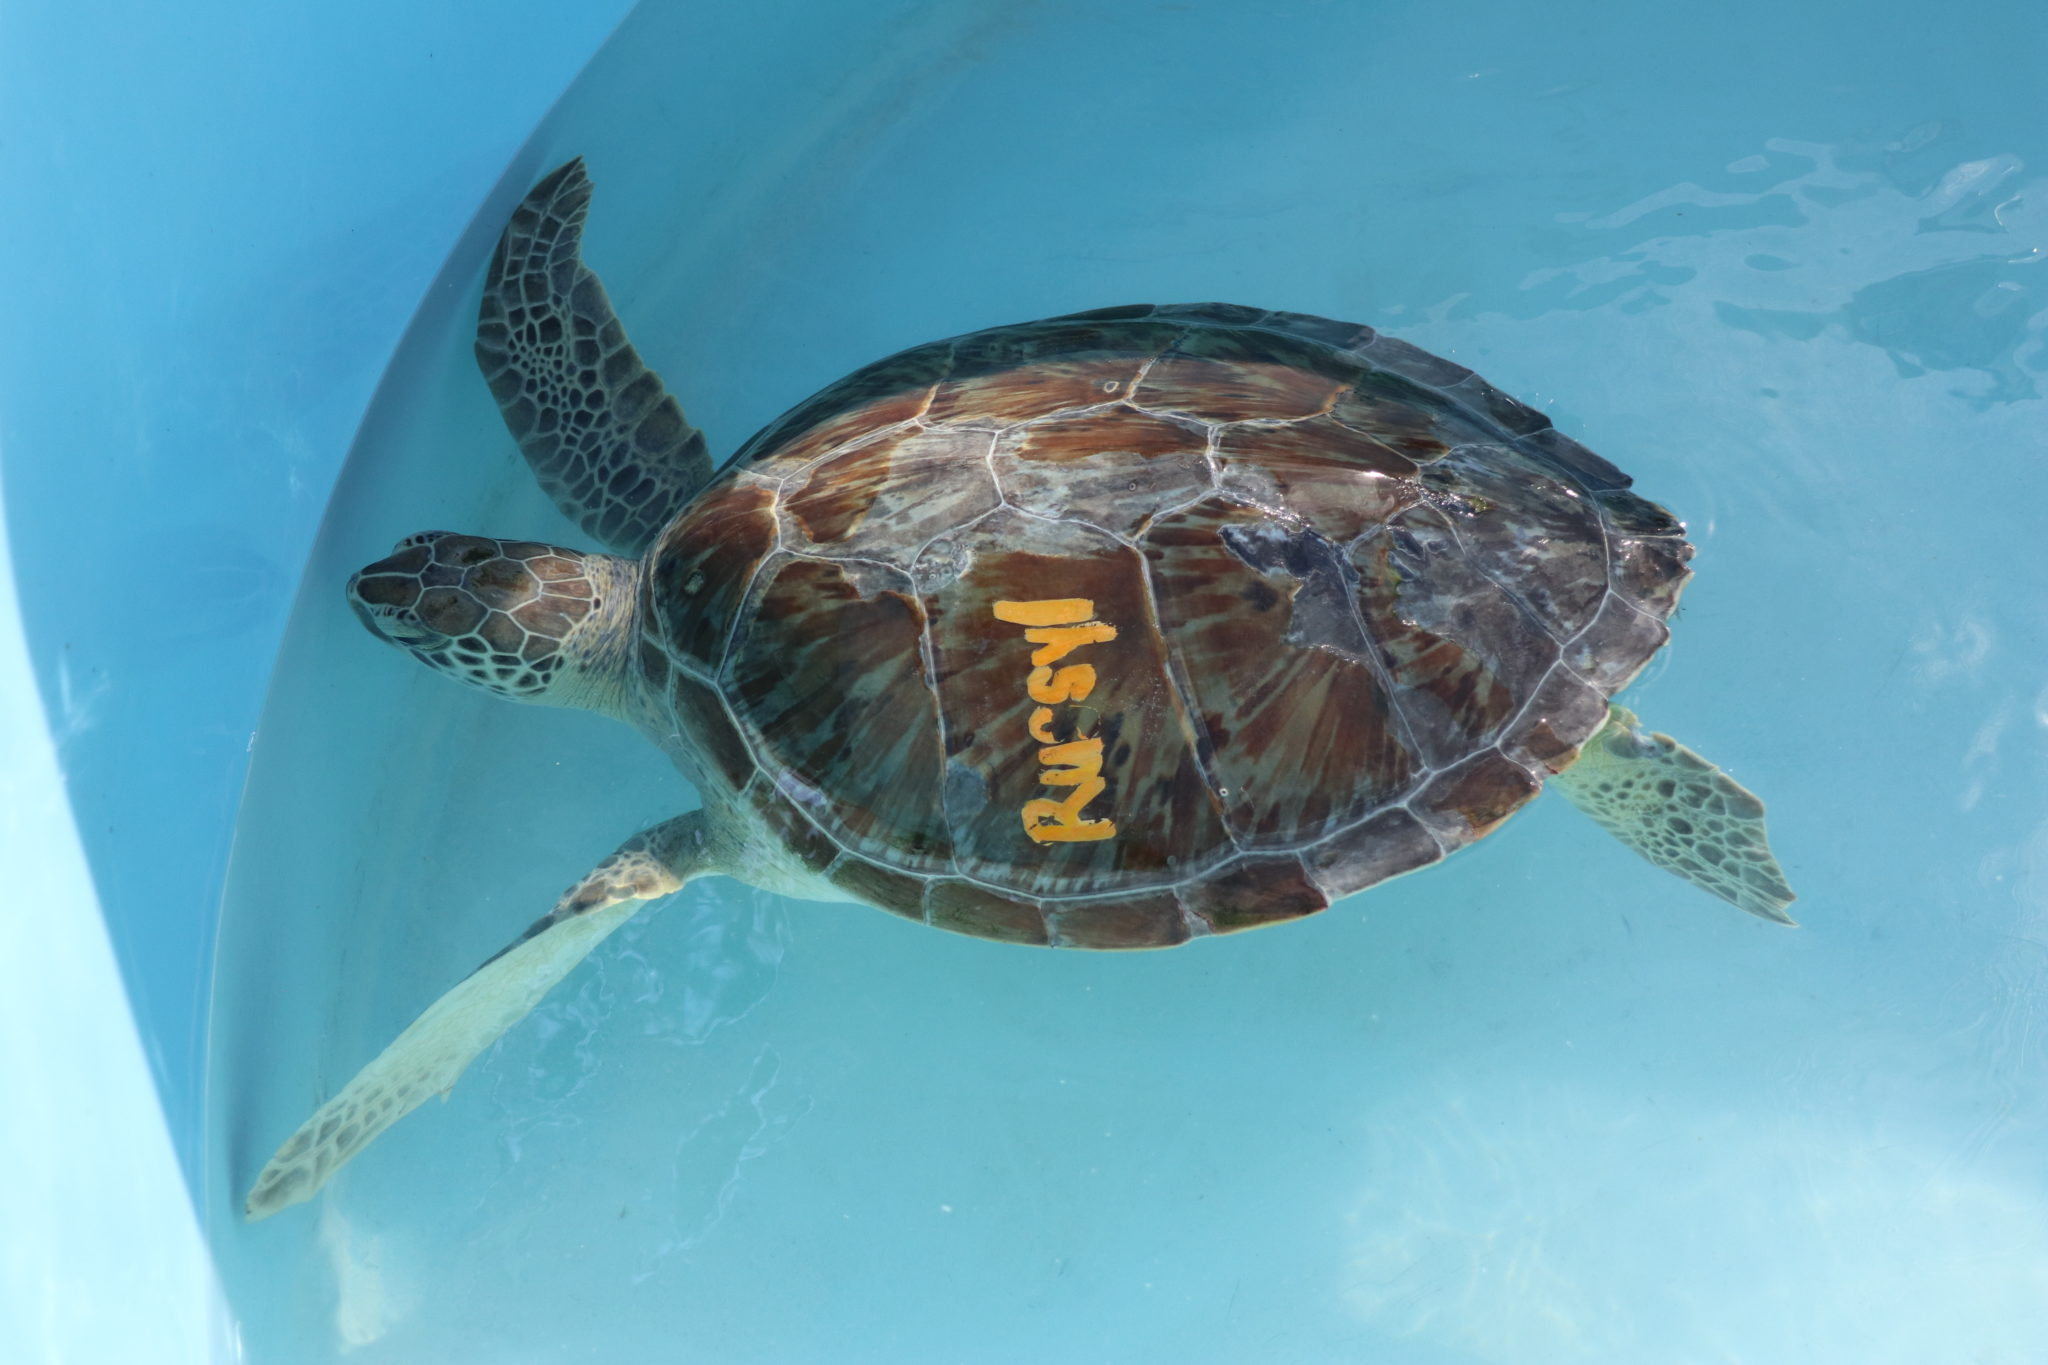 Green sea turtle with FP virus in individual treatment tank at the Turtle Hospital